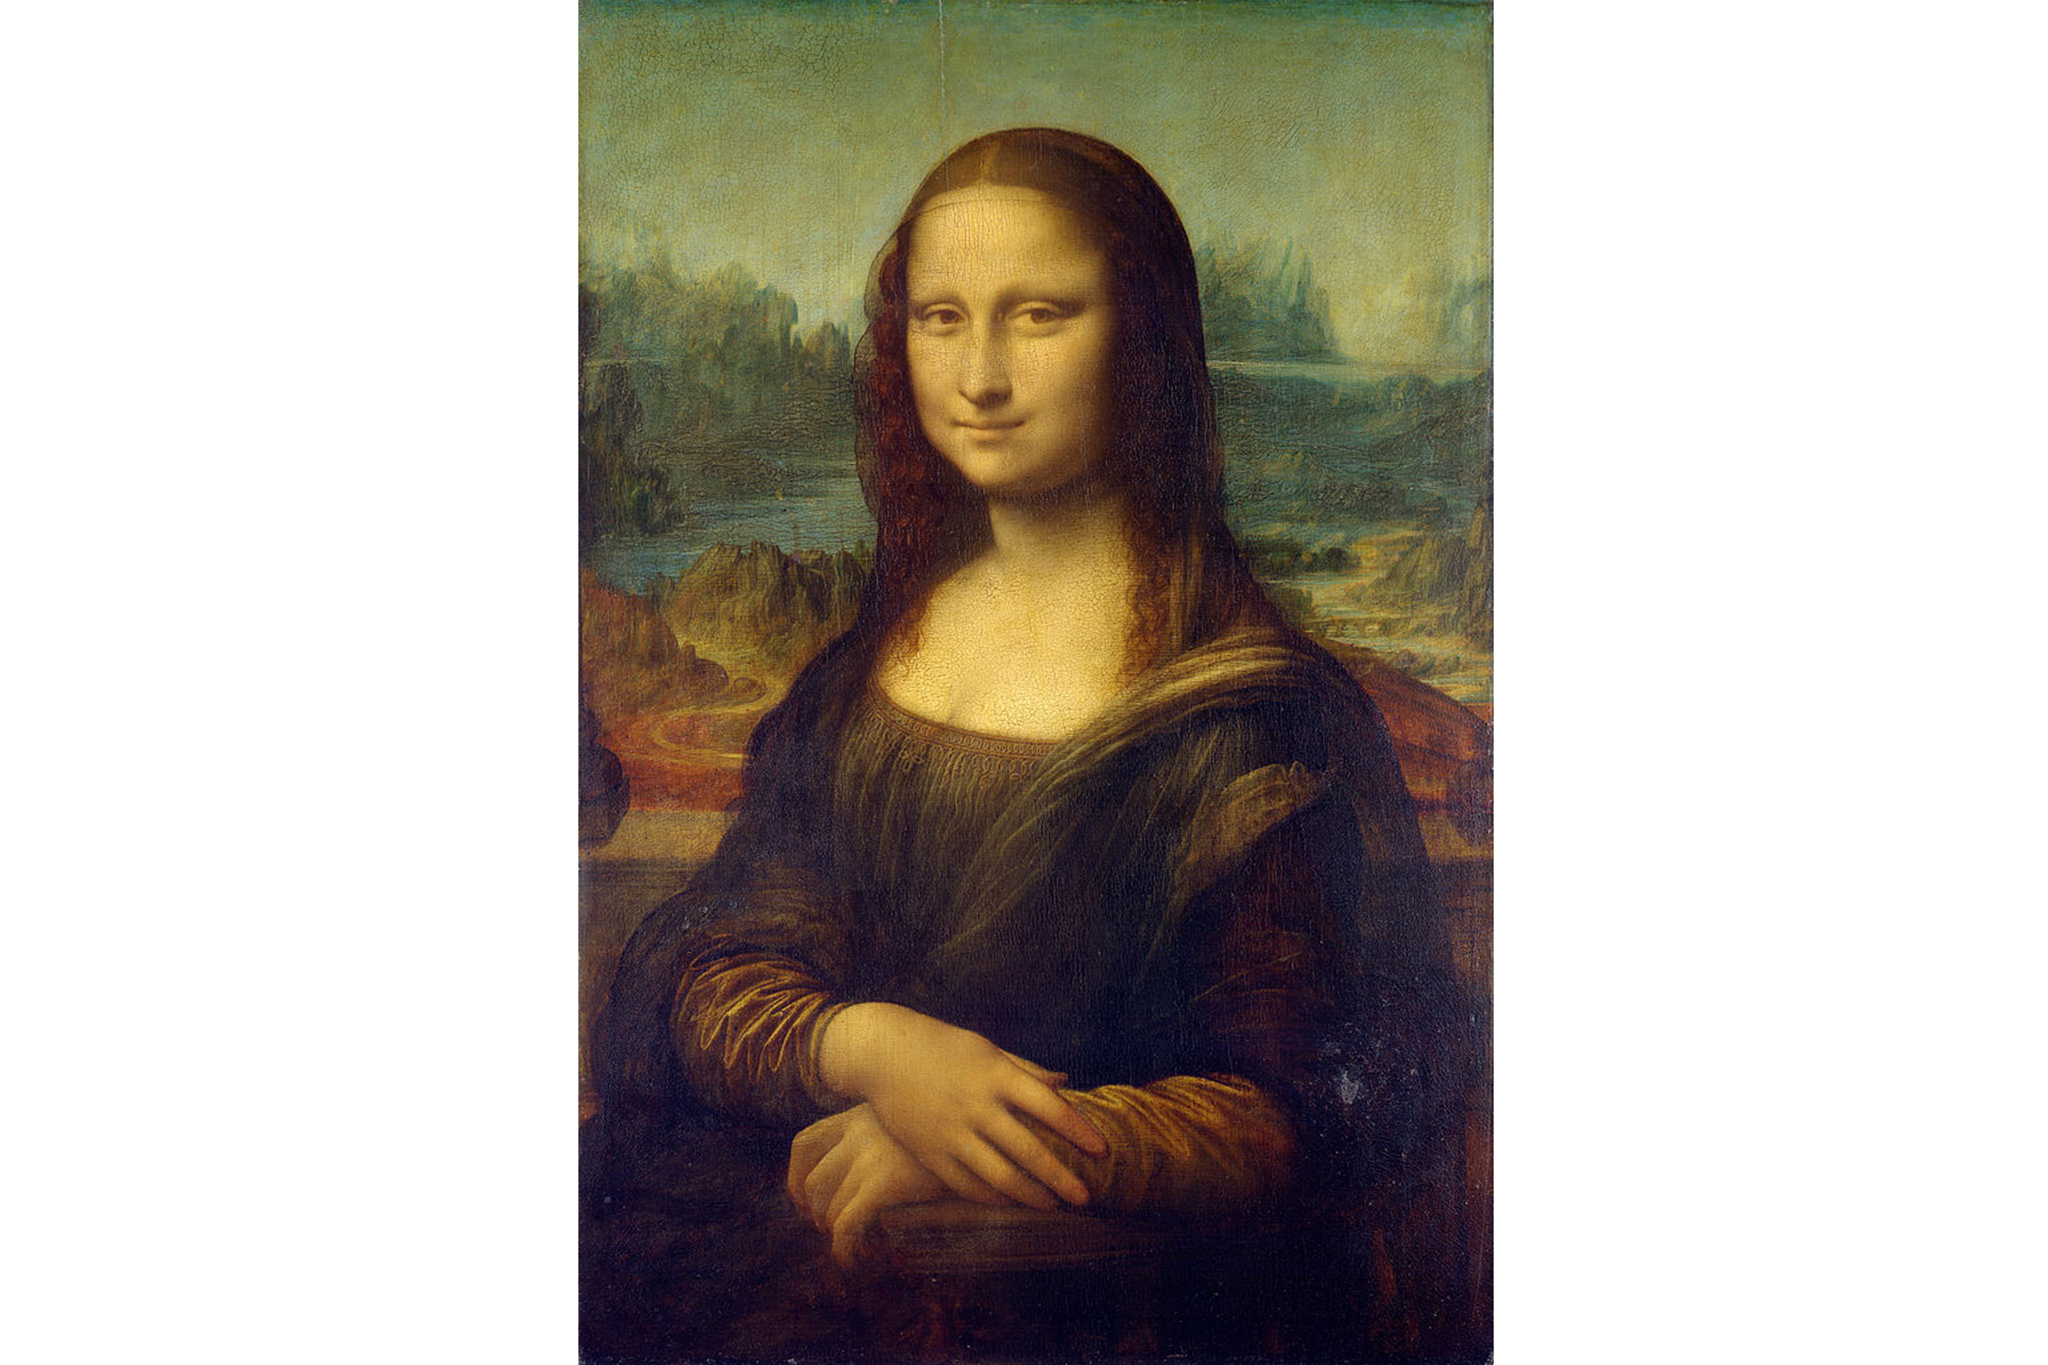 Leonardo Da Vinci, The Mona Lisa